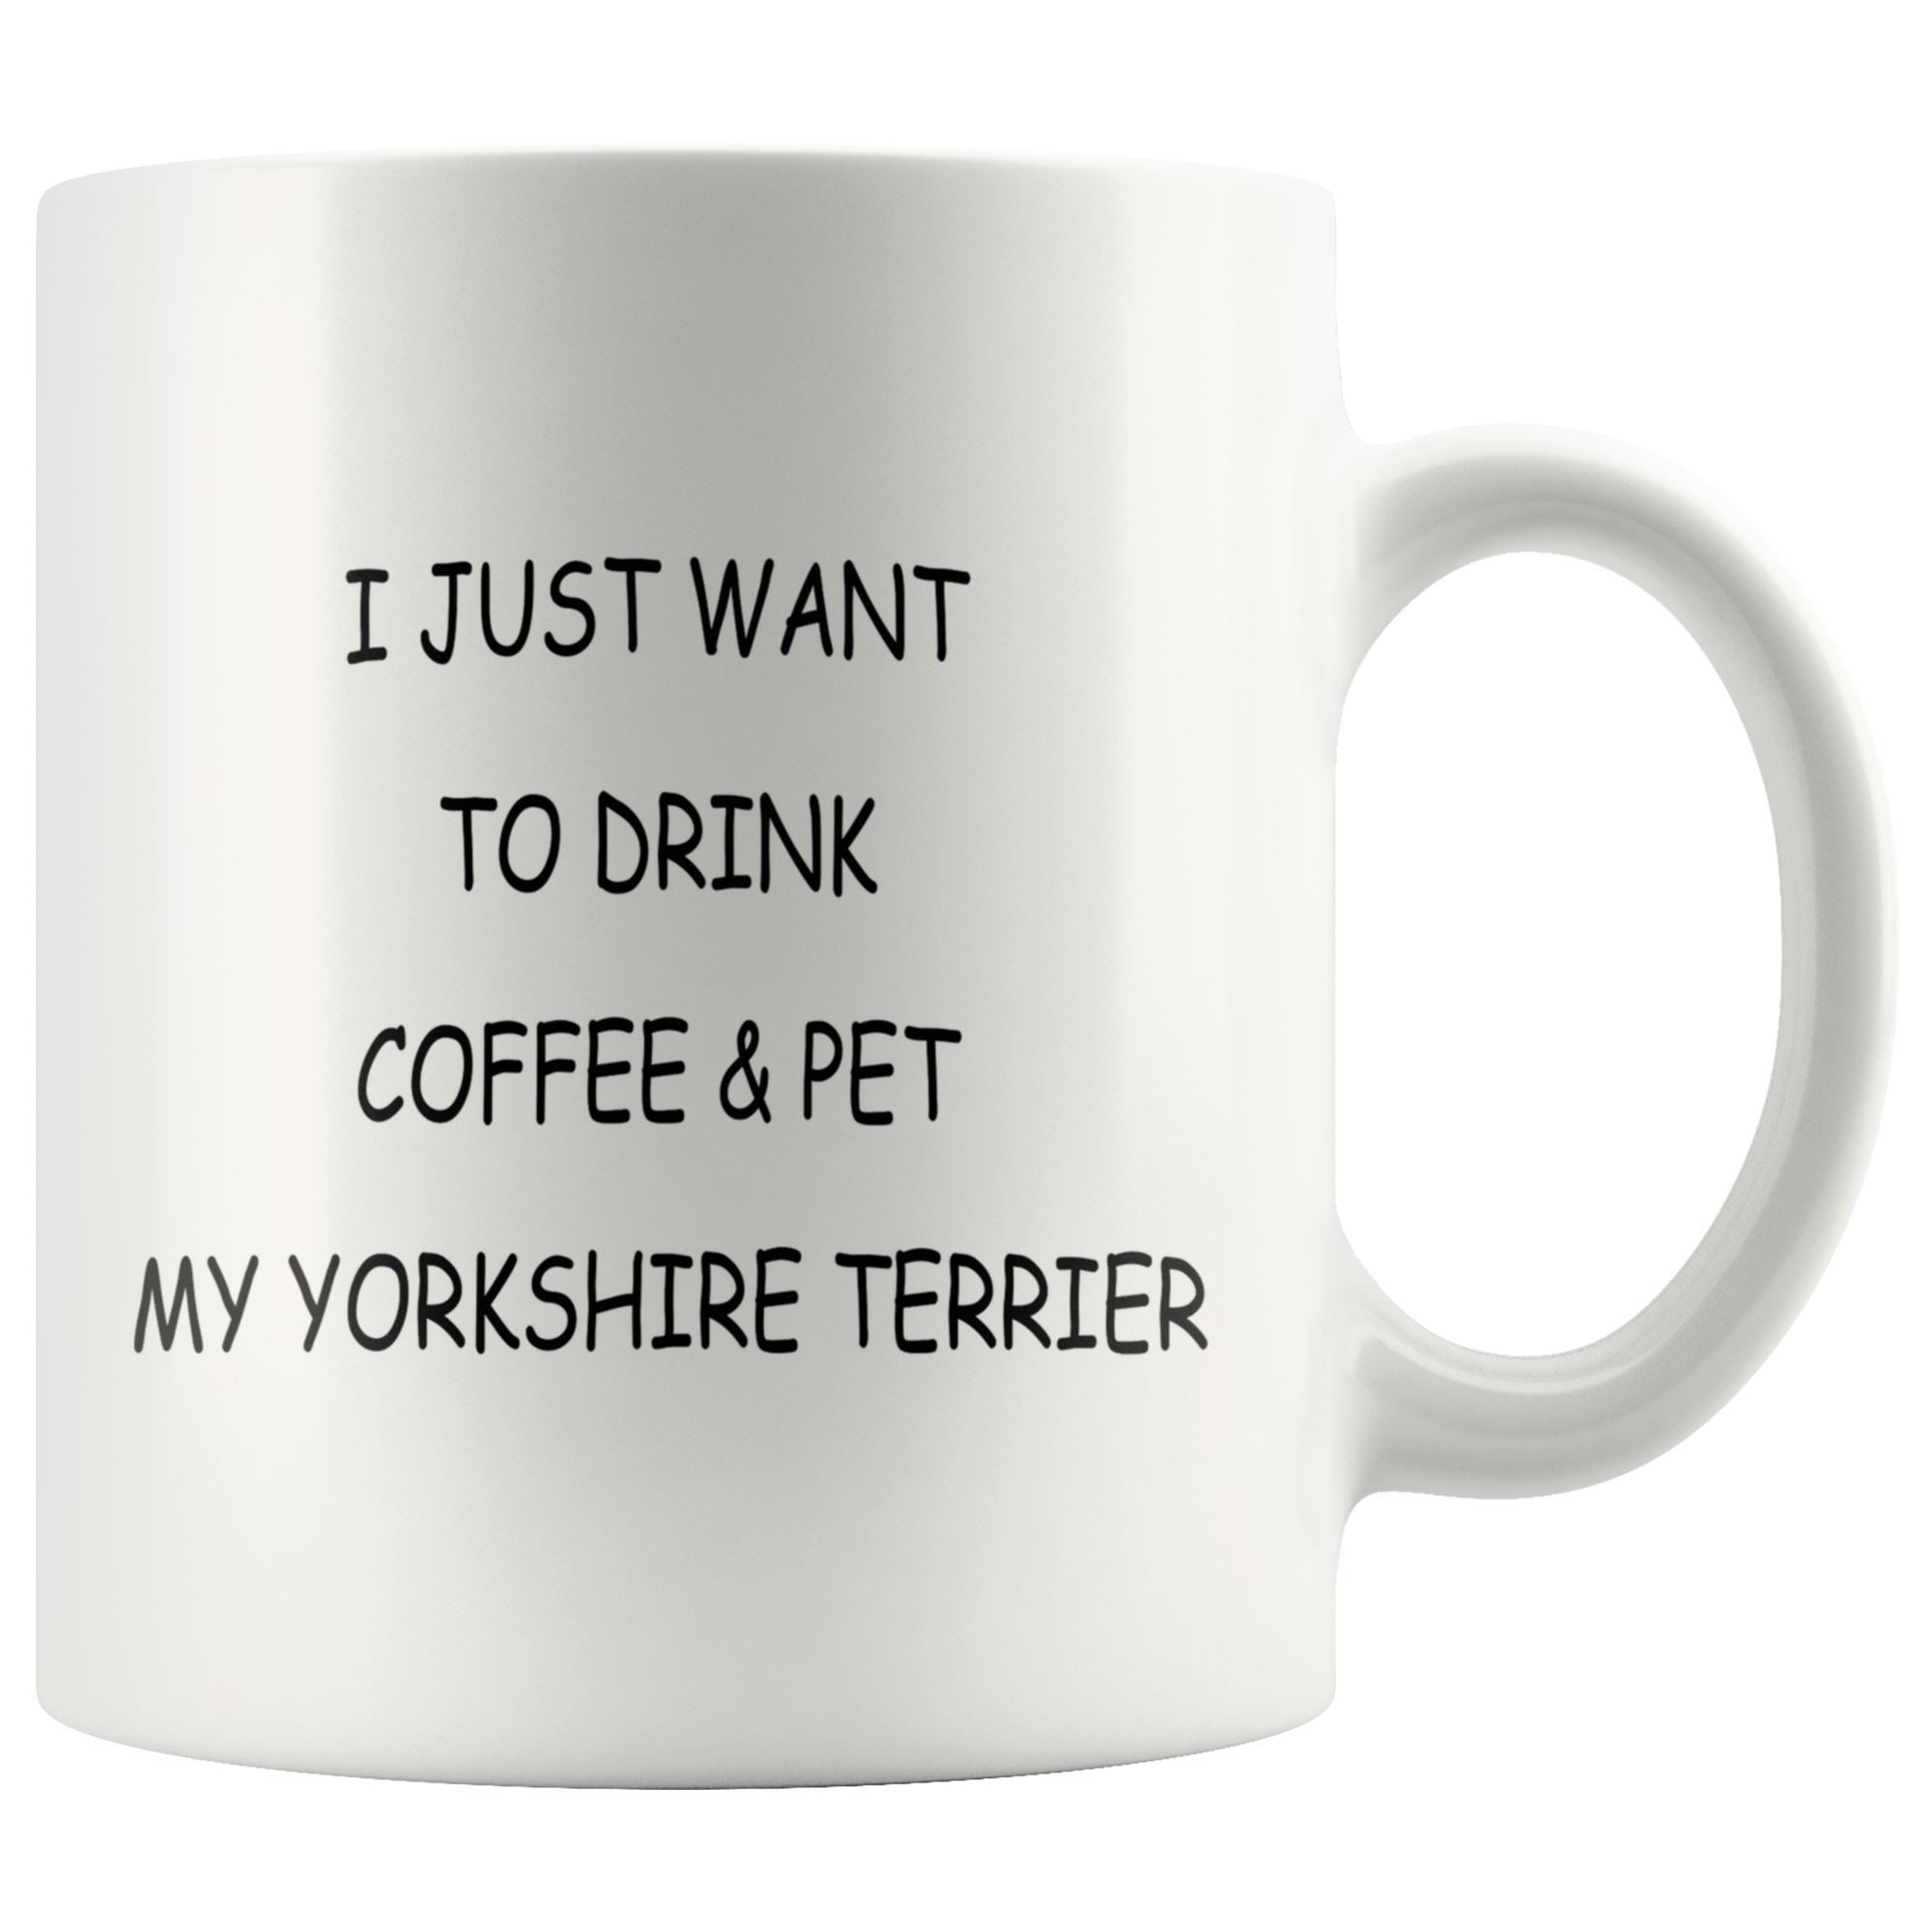 Yorkshire Terrier Mug Drinkware teelaunch 11oz Mug